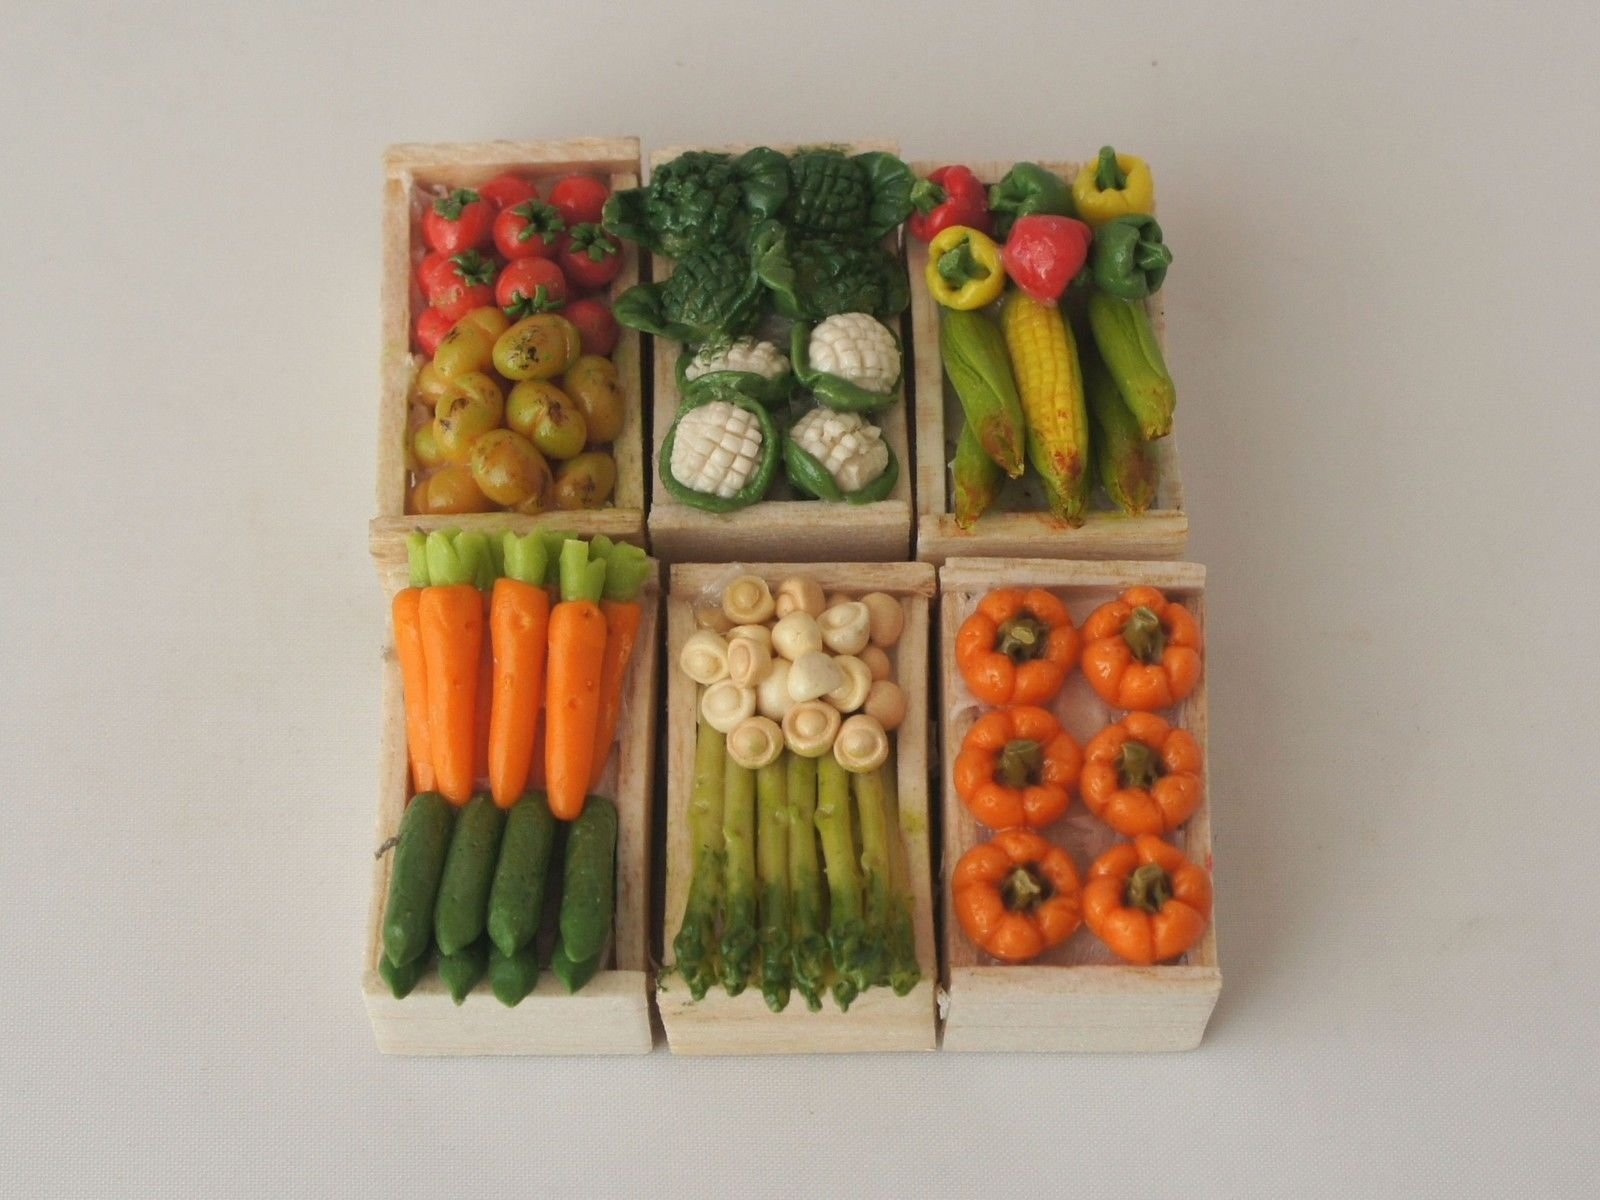 Assorted Miniature Vegetables In Wooden Crate, 6 Pack (Fairy Garden Accessory)